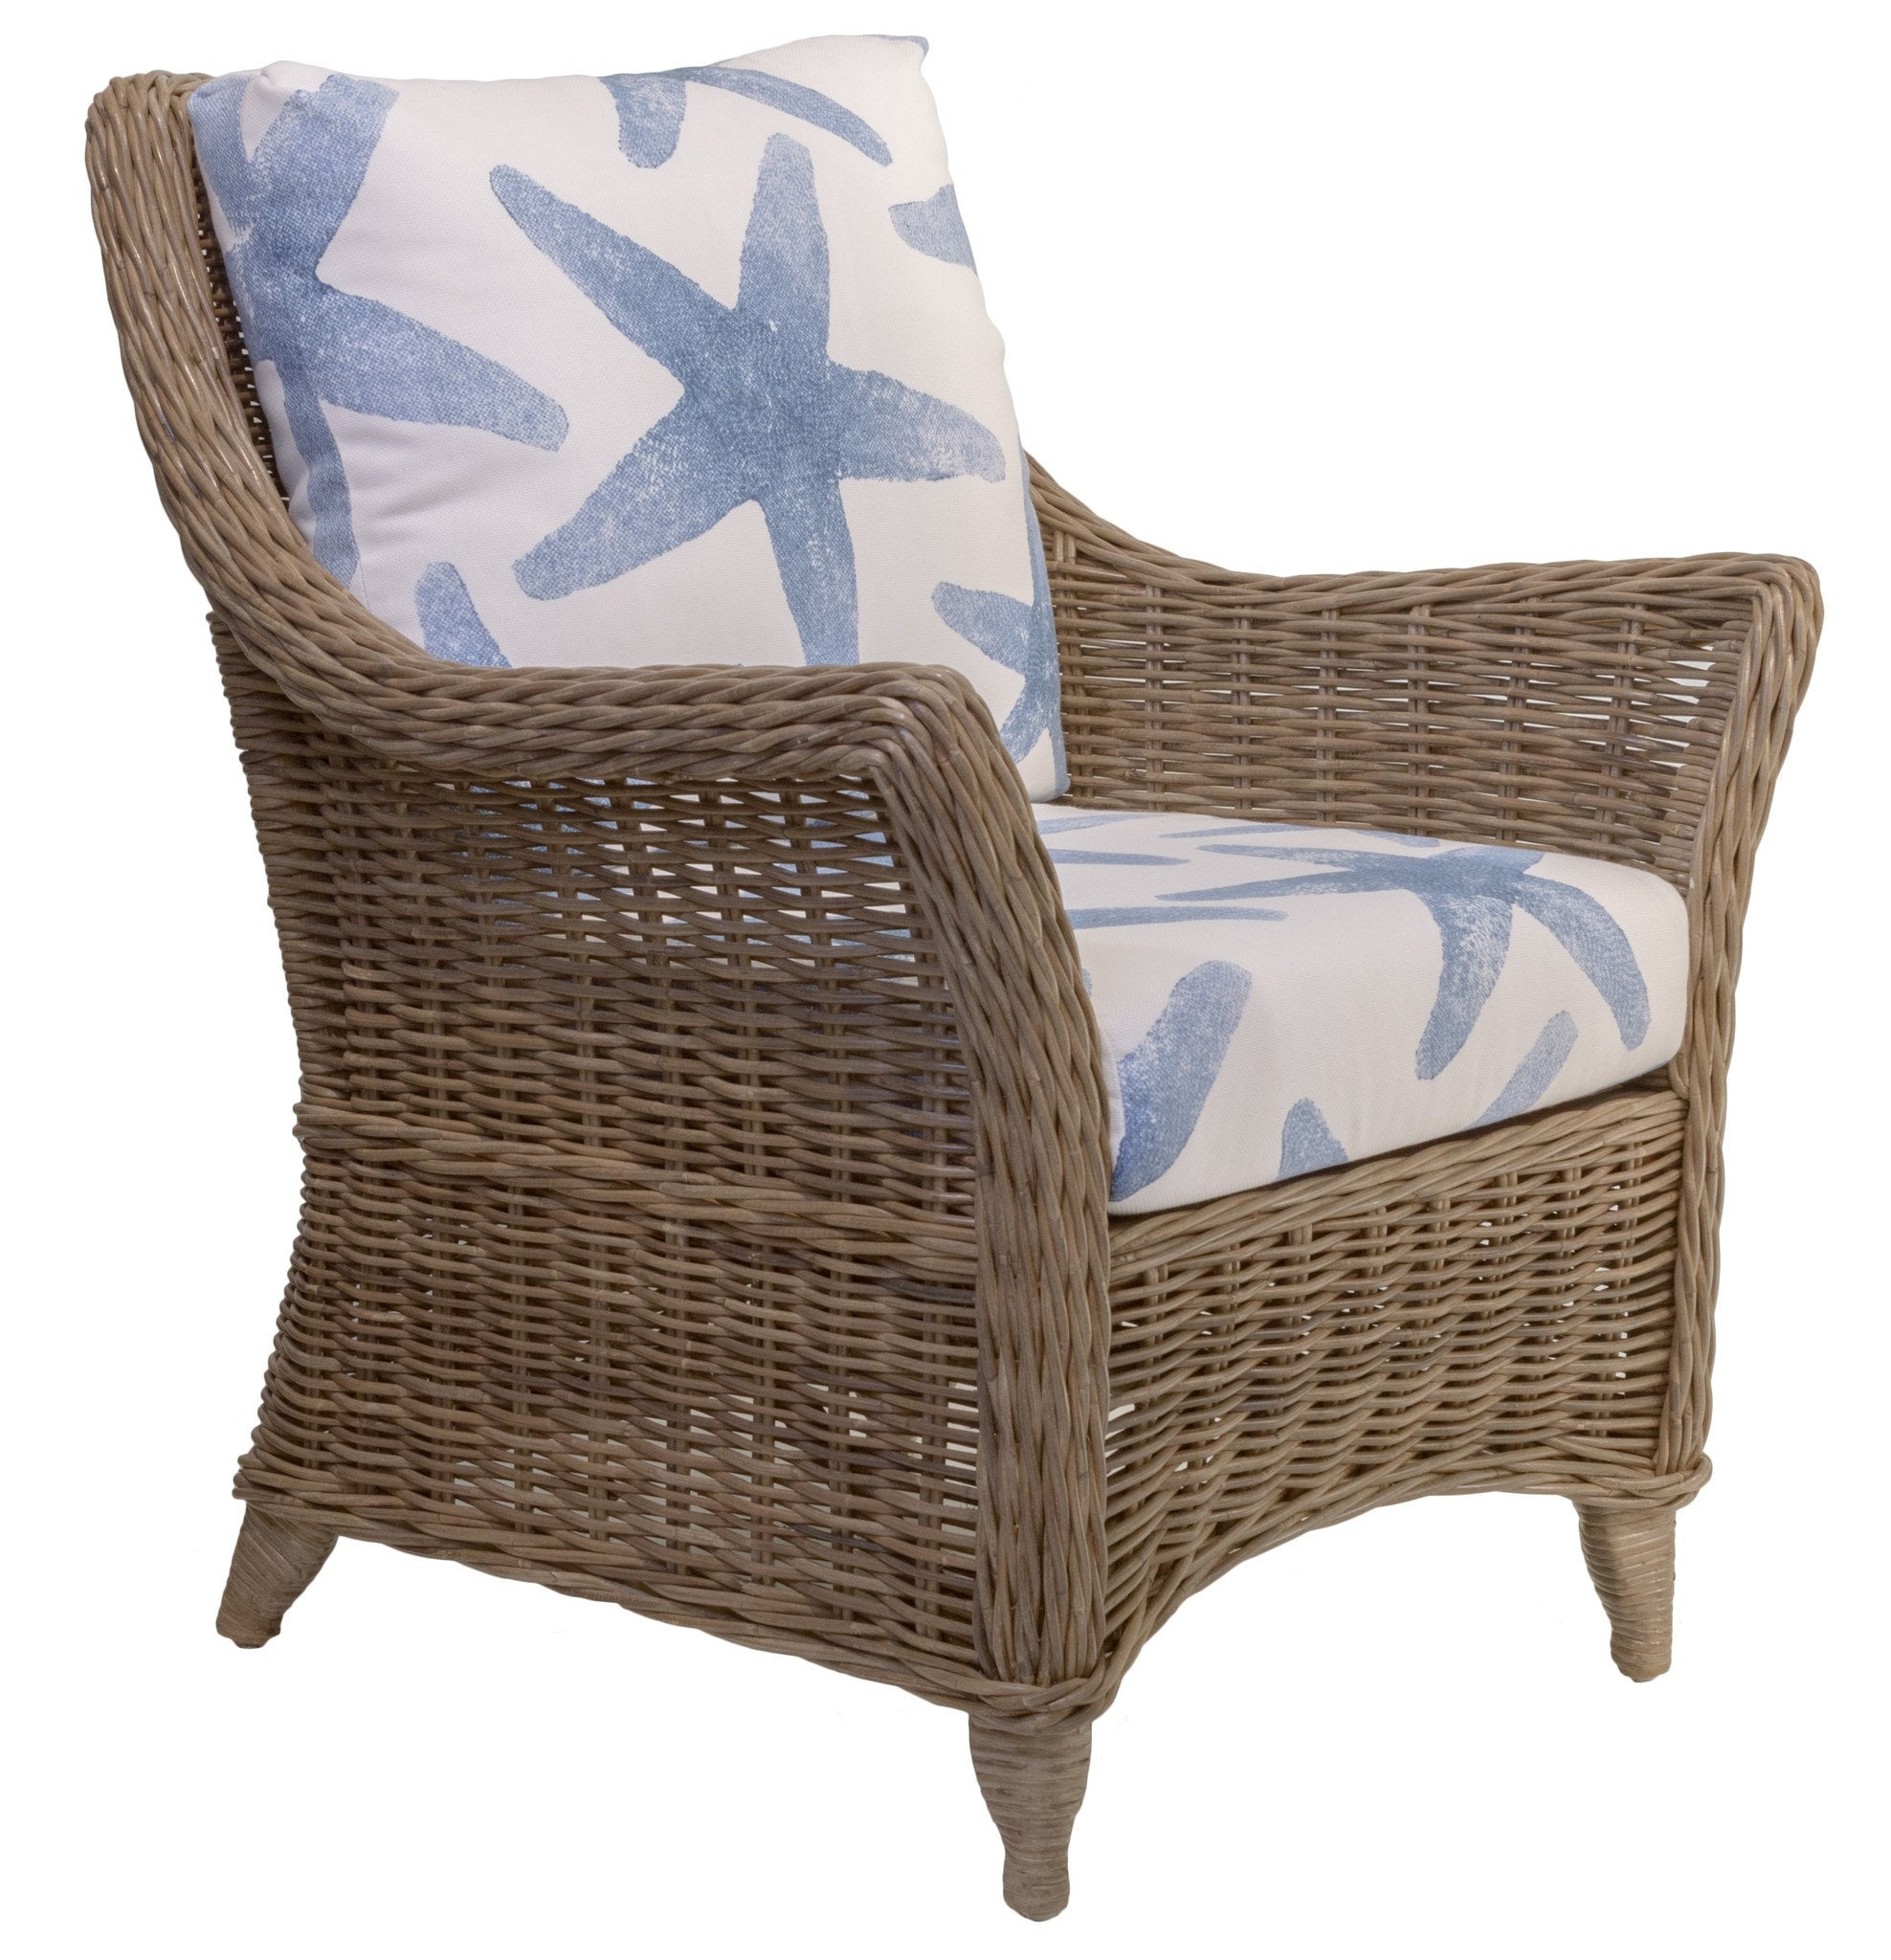 Designer Wicker & Rattan By Tribor Conservatory Arm Chair by Designer Wicker from Tribor Chair - Rattan Imports